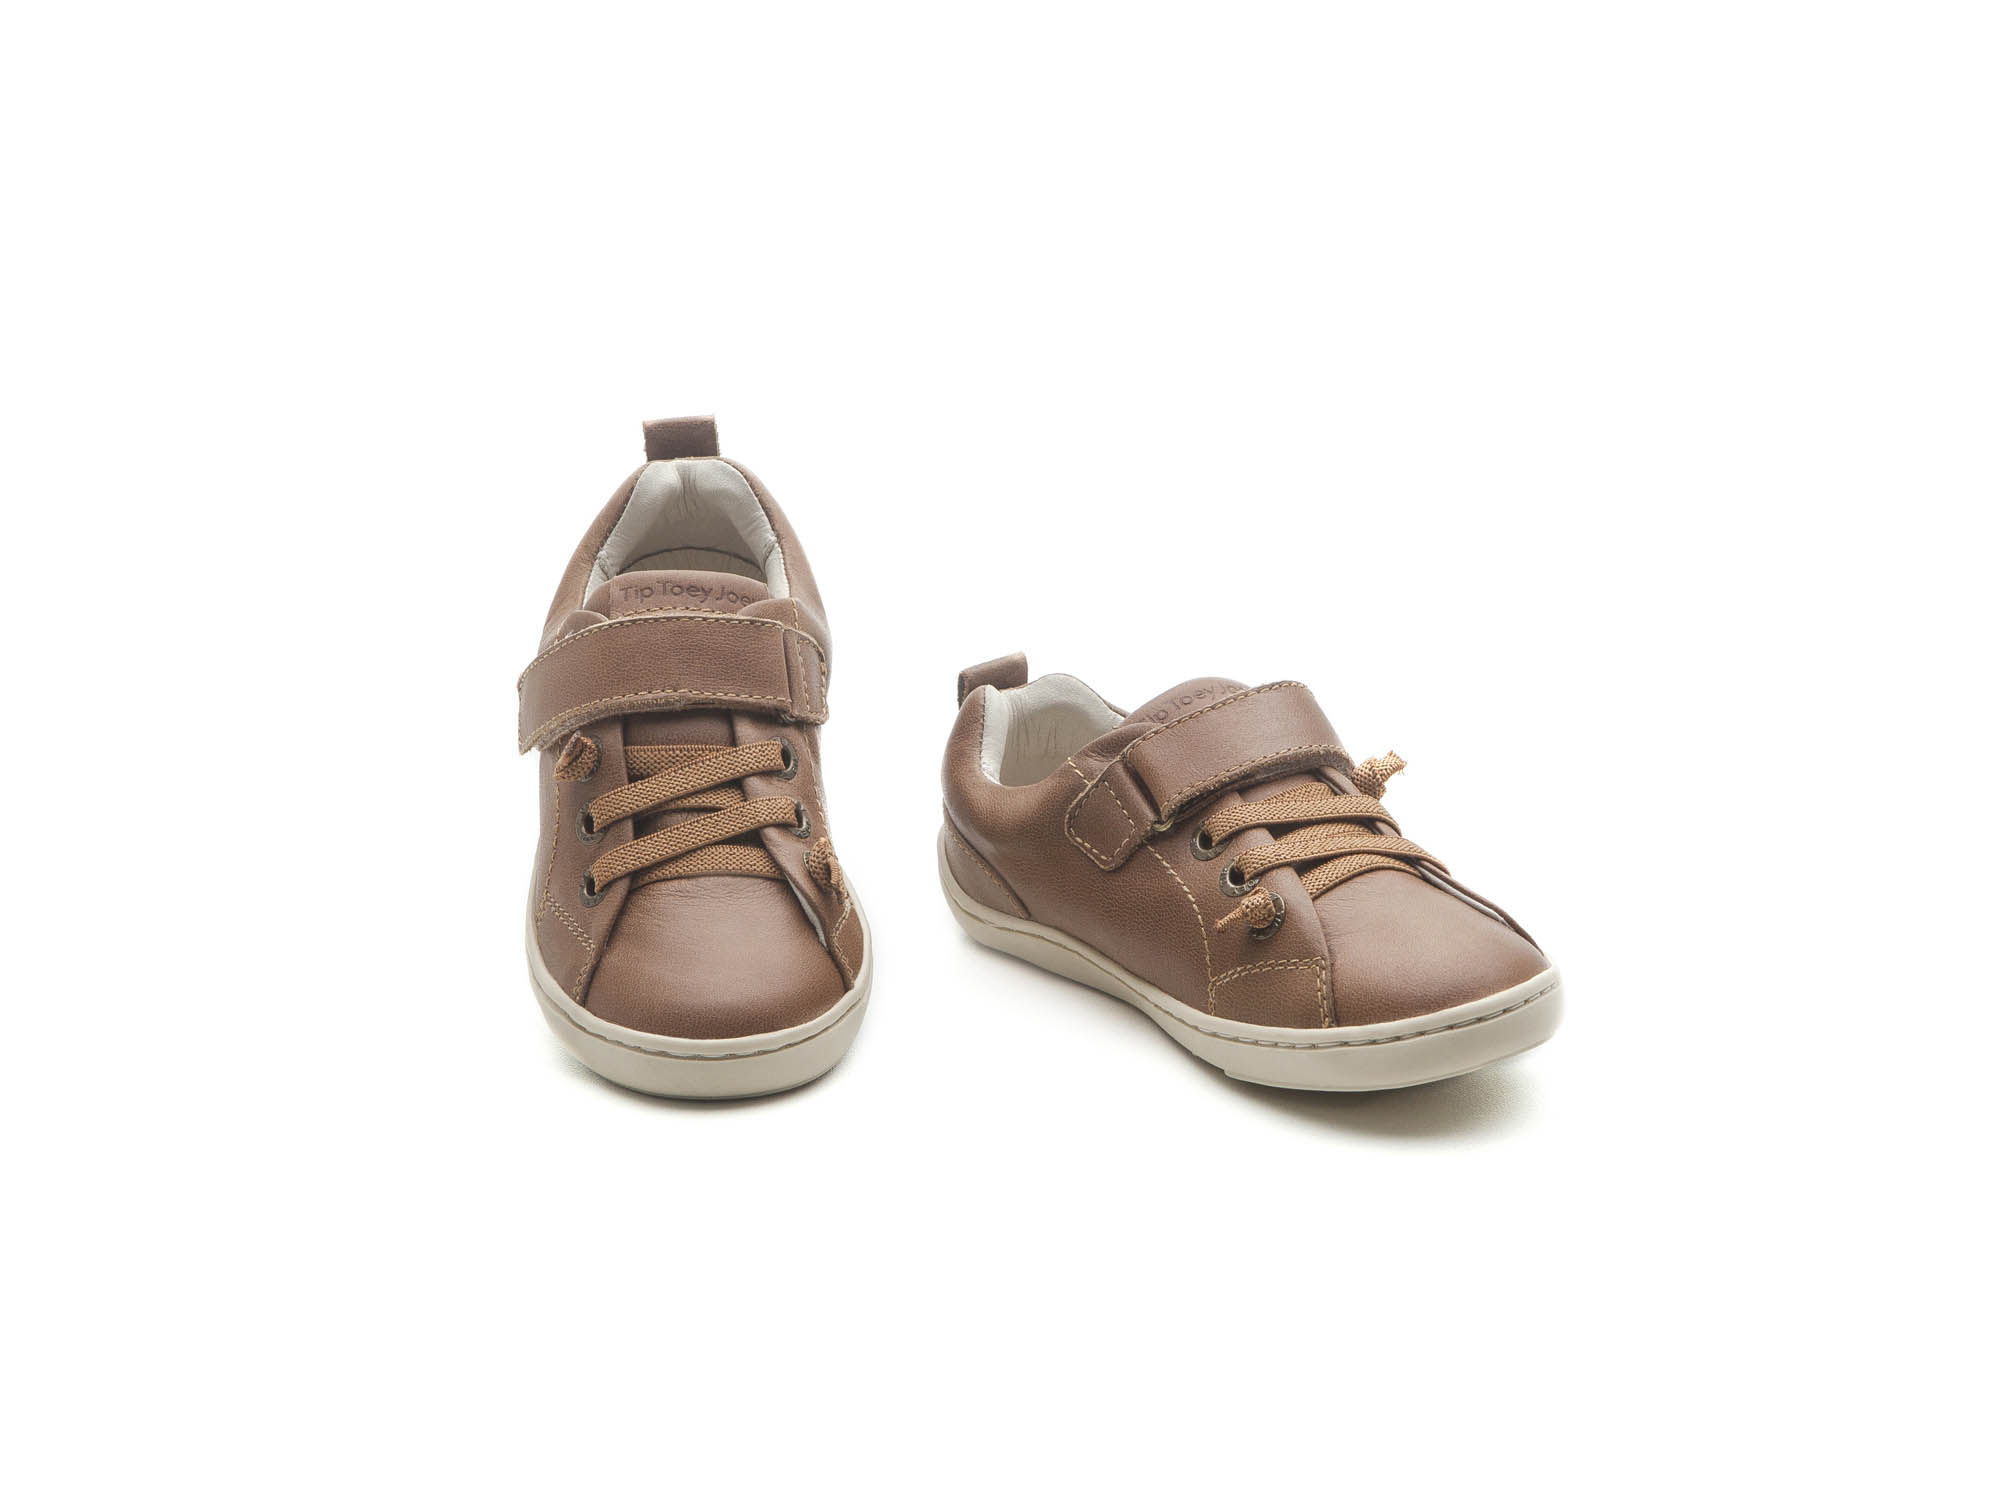 Tênis Little Grao Whisky/ Whisky Toddler for ages 2 to 4 years - 1